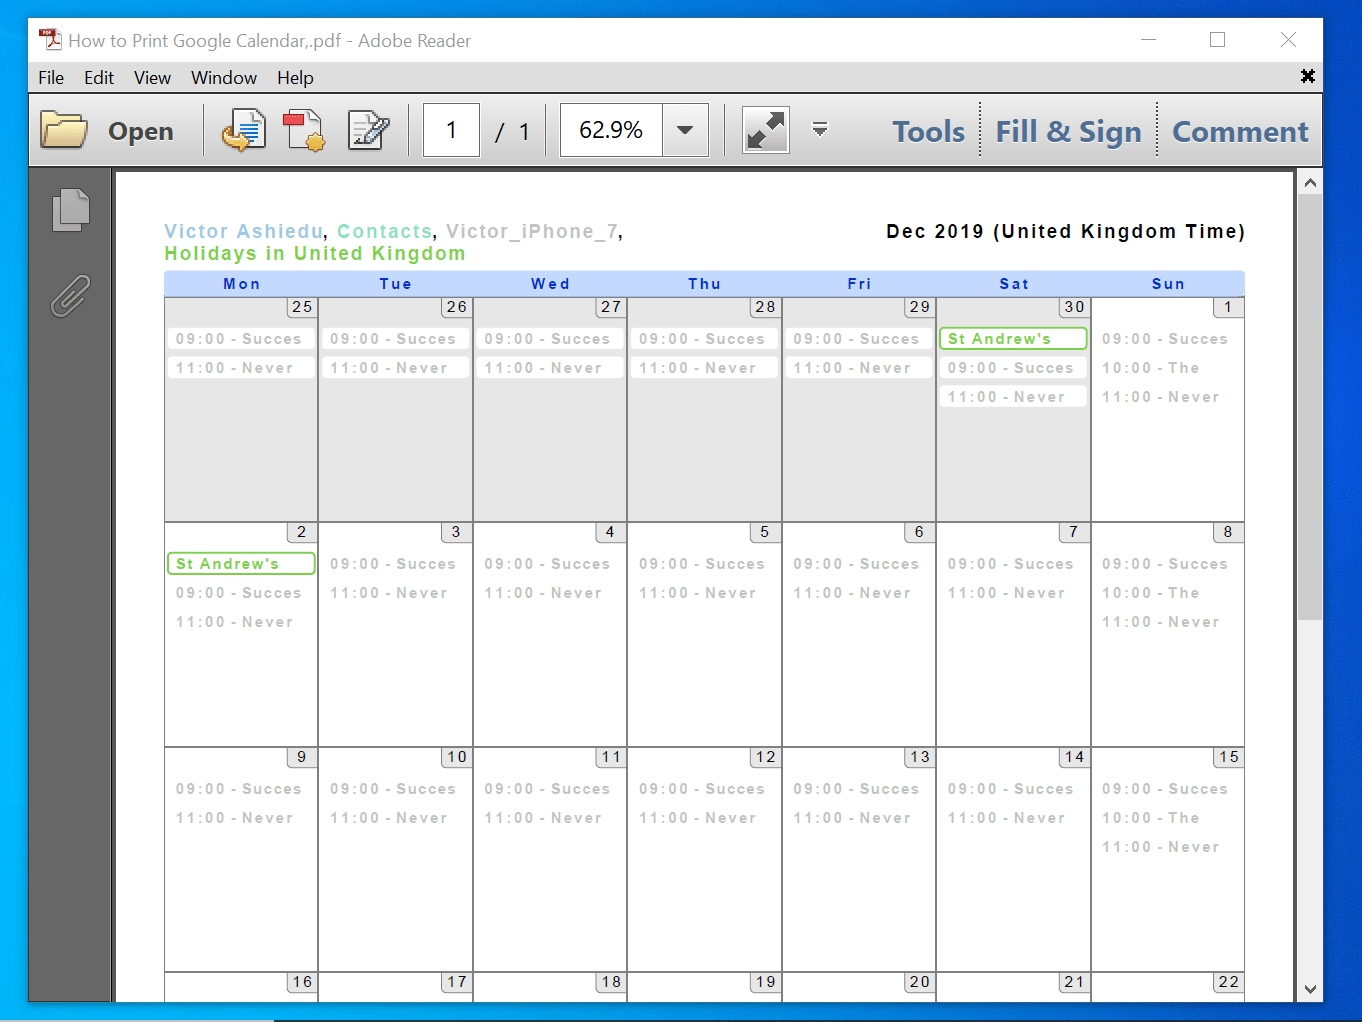 How To Print Google Calendar (Print To Paper And Save In Pdf)